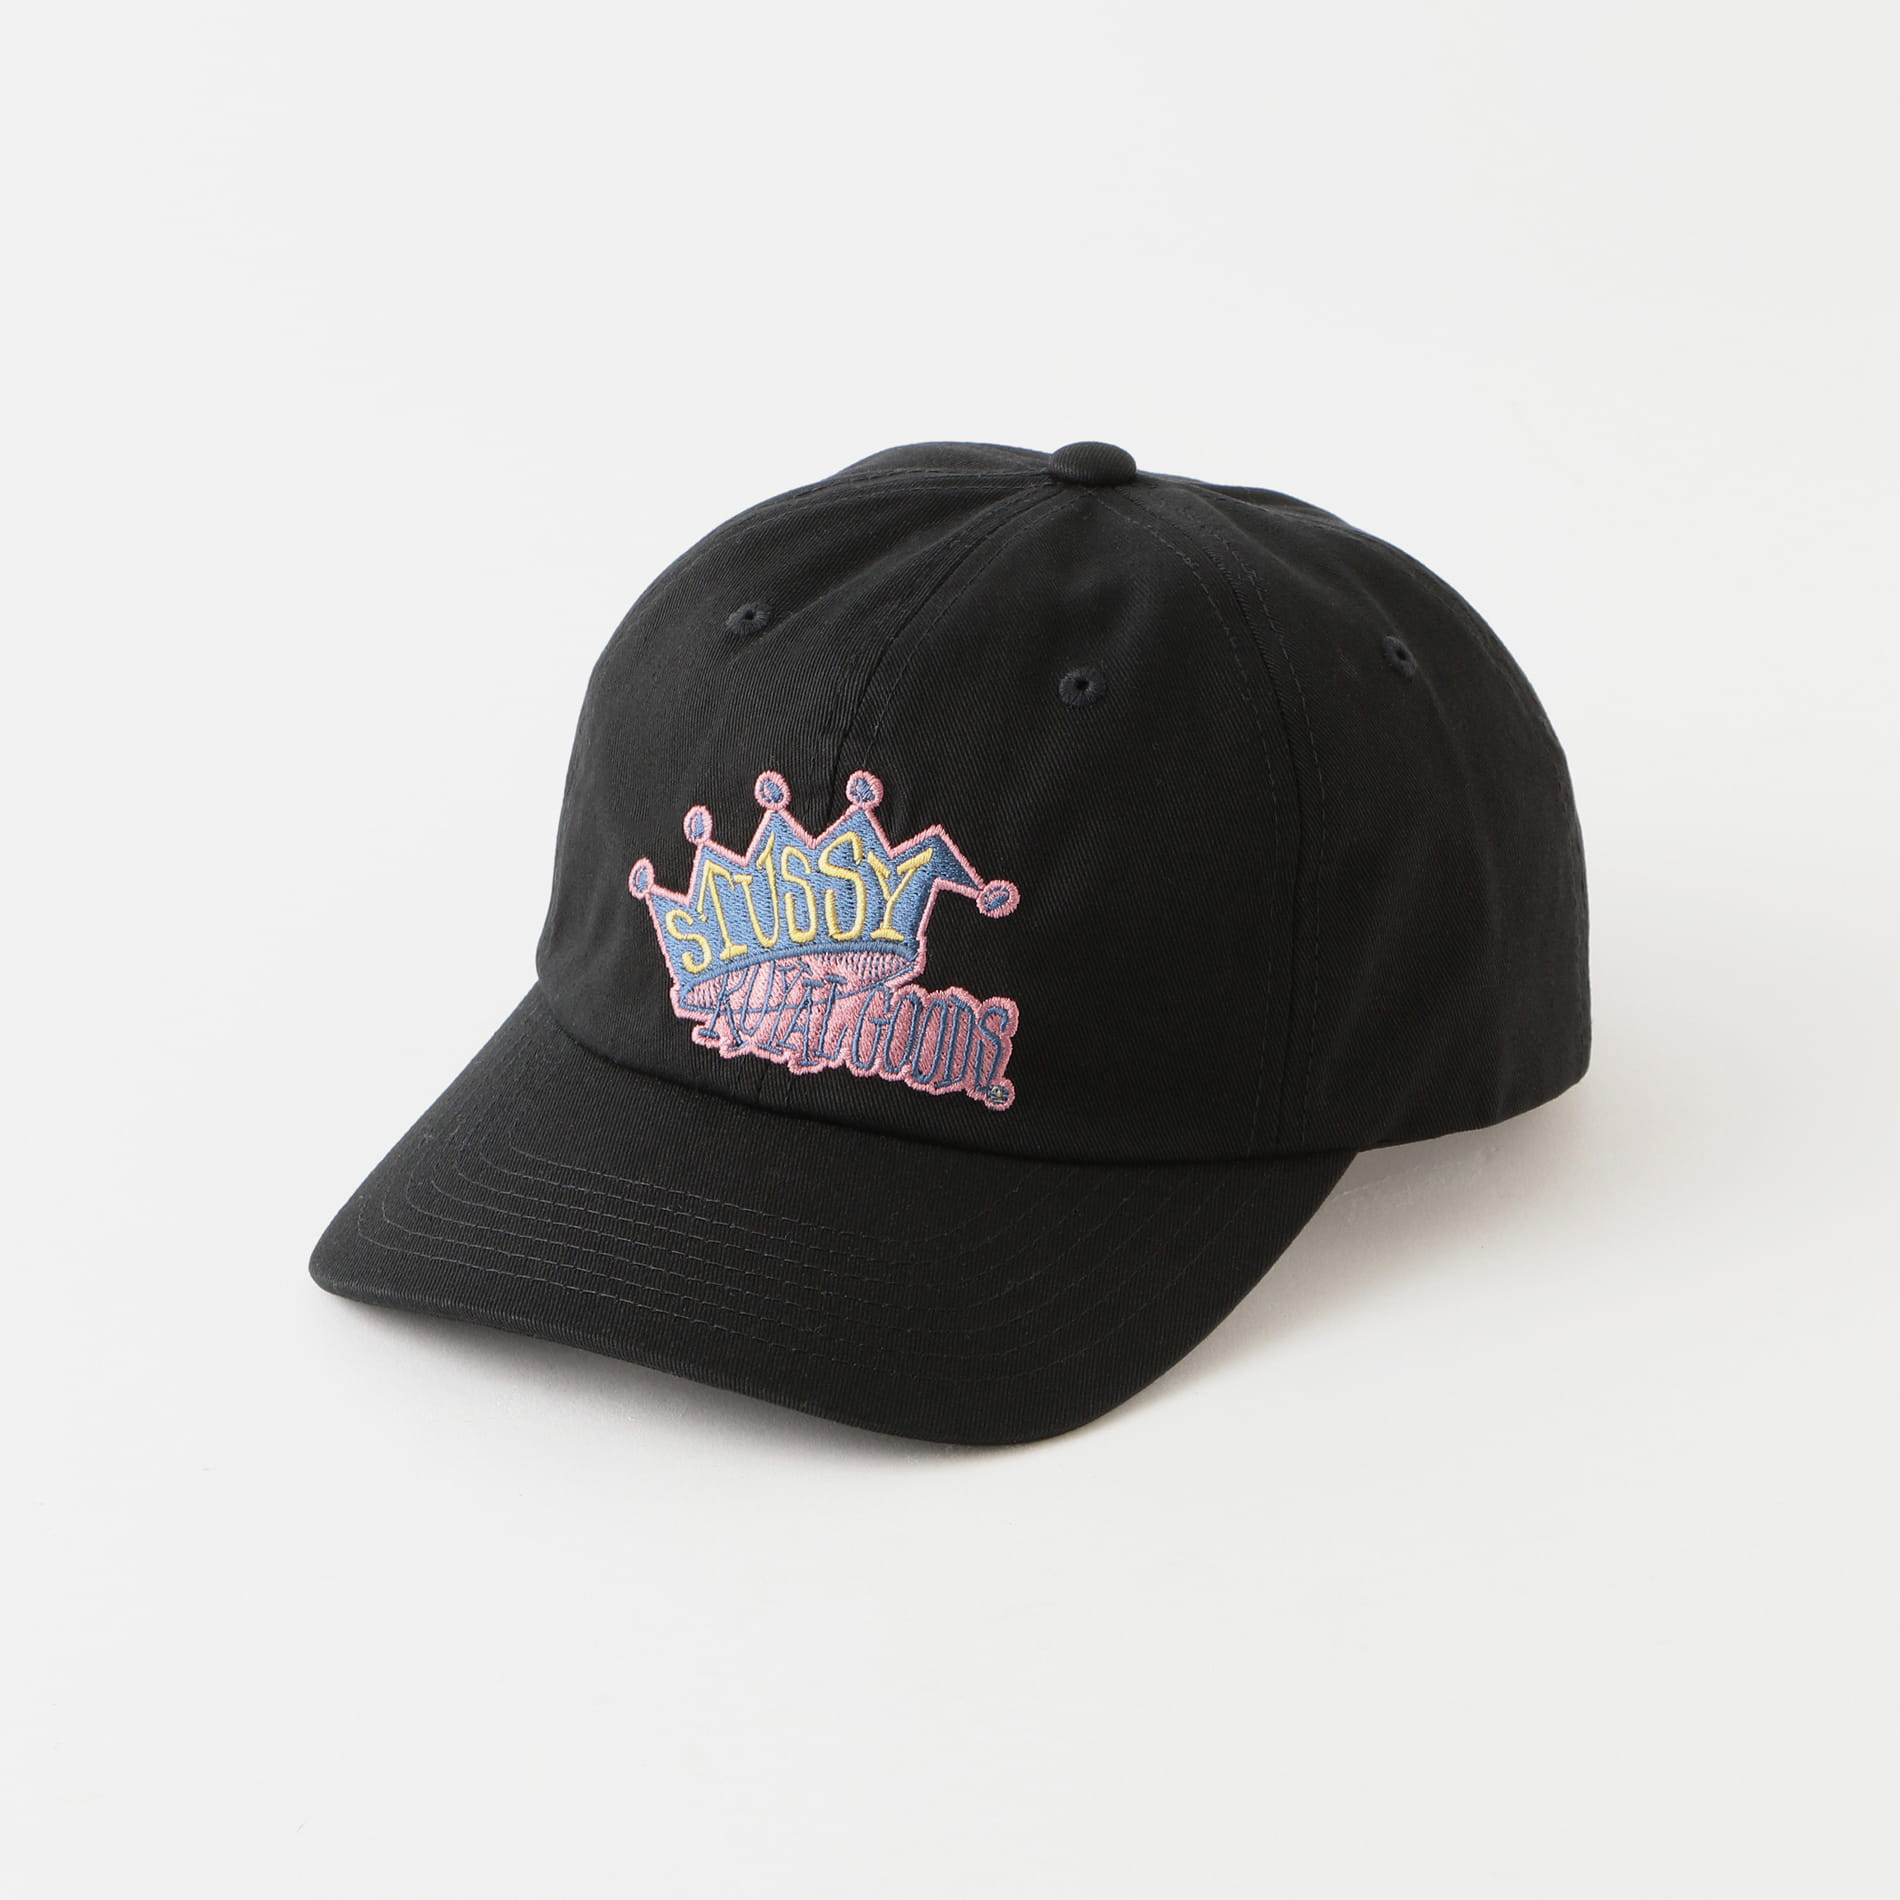 【Stussy】MEN 帽子 Royal Goods Low Pro Cap 131940